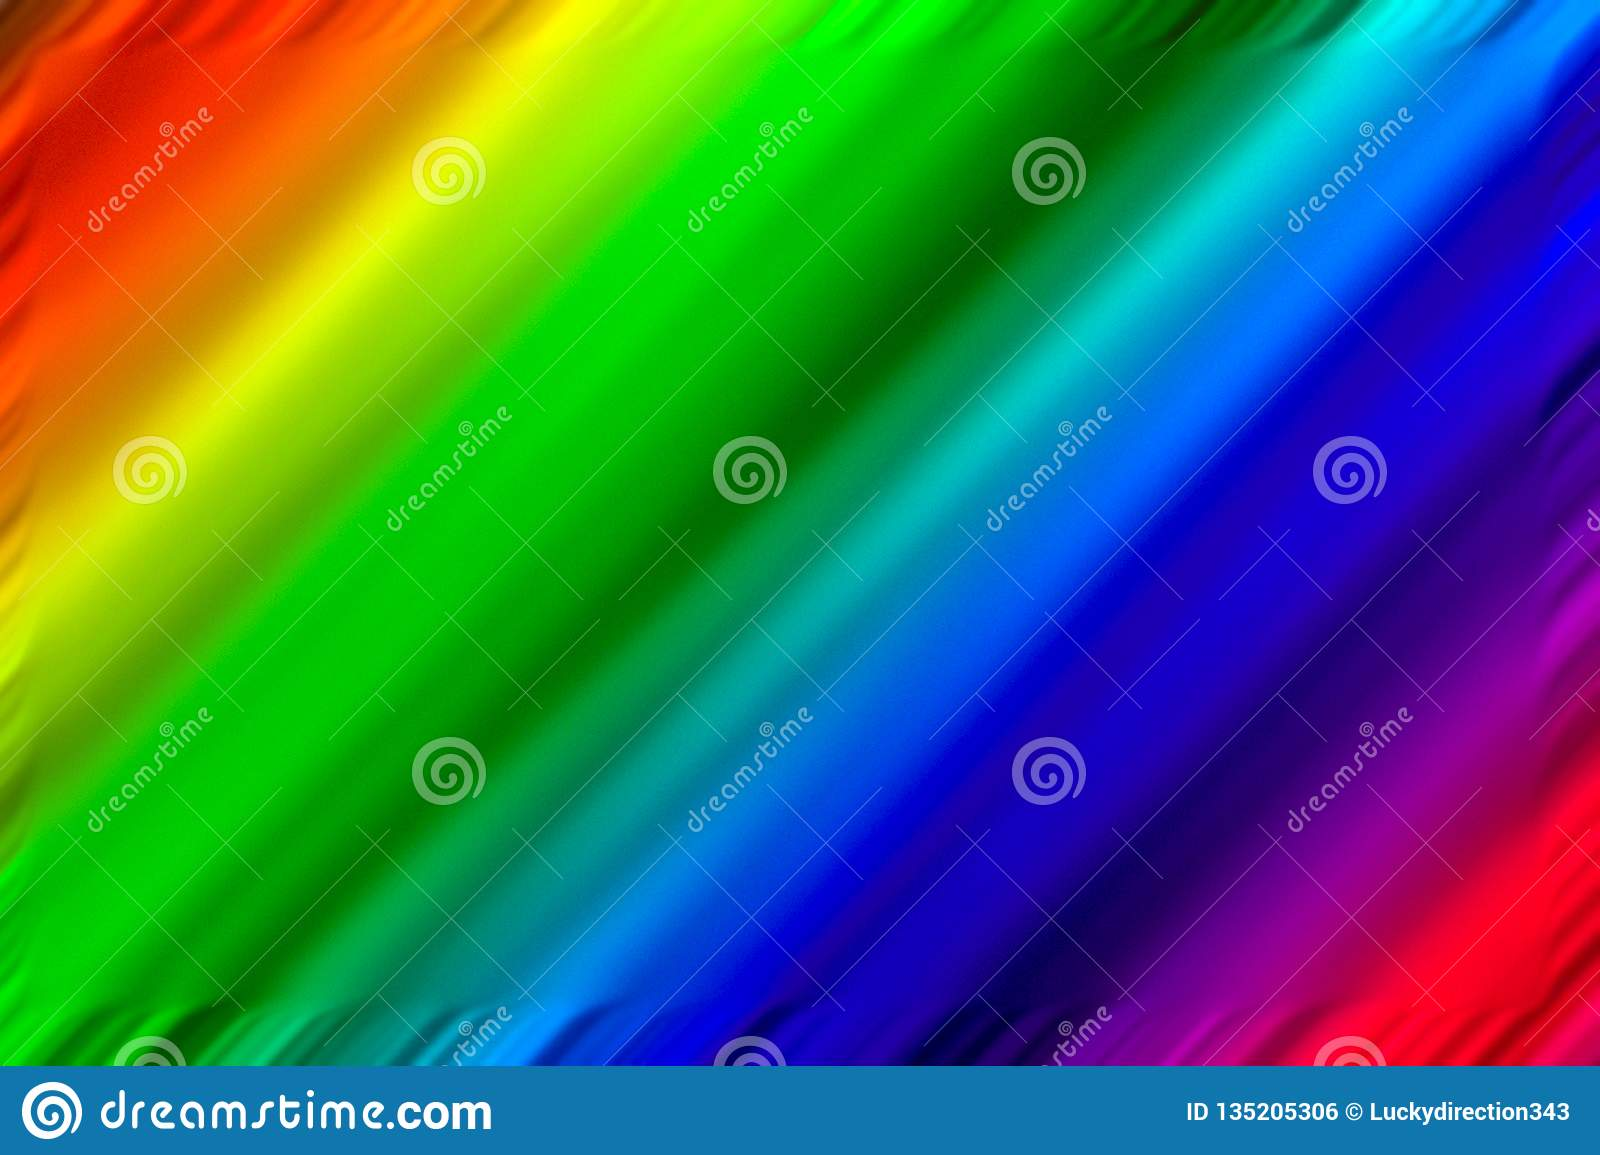 Colorful 3d Abstract Pattern Cool Background Wallpaper Images Patterns Designs Stock Illustration Illustration Of Purple Multicolor 135205306